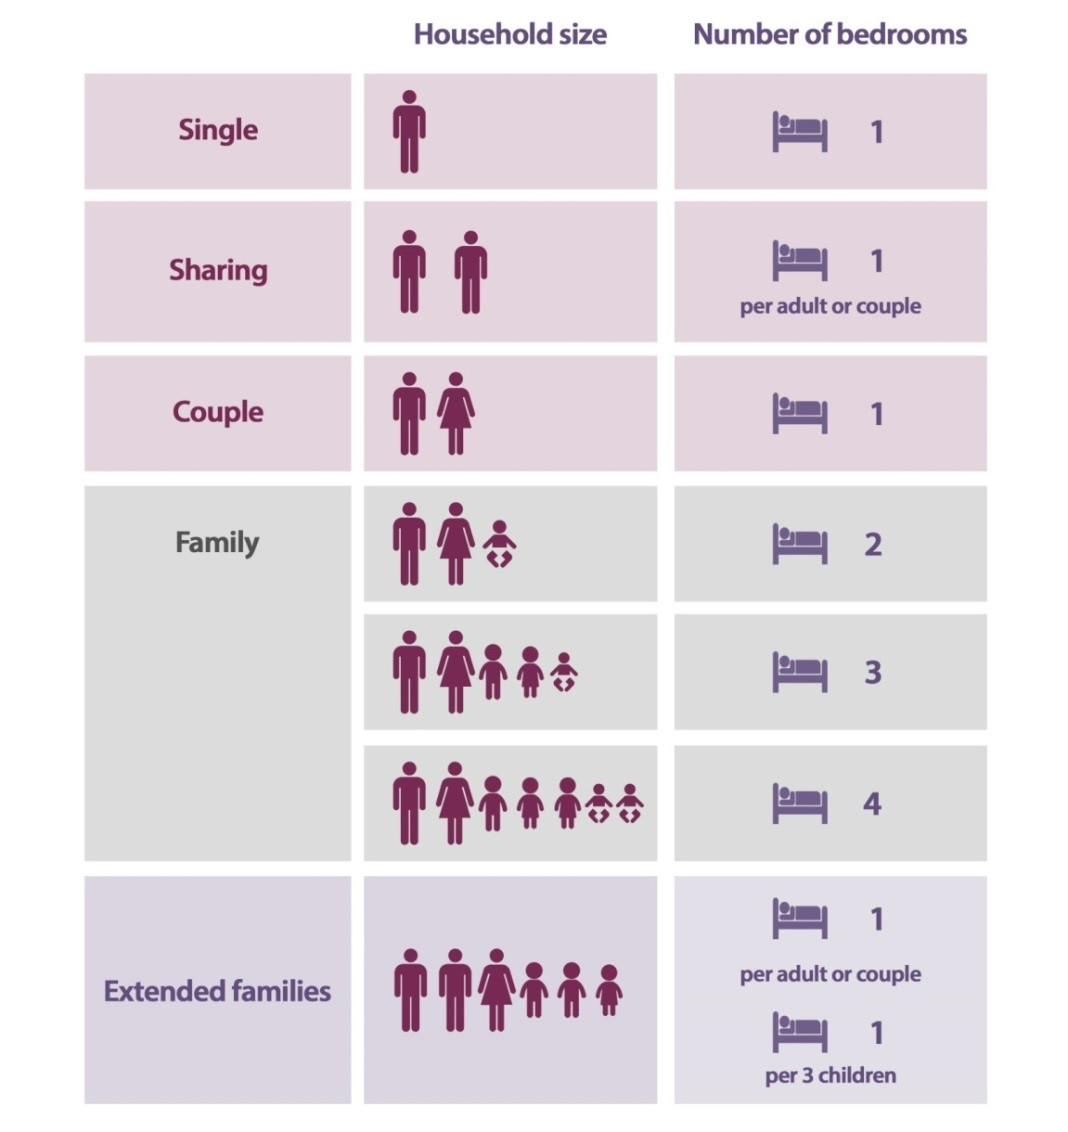 Table showing the number of people per bedrooms. More information in caption.